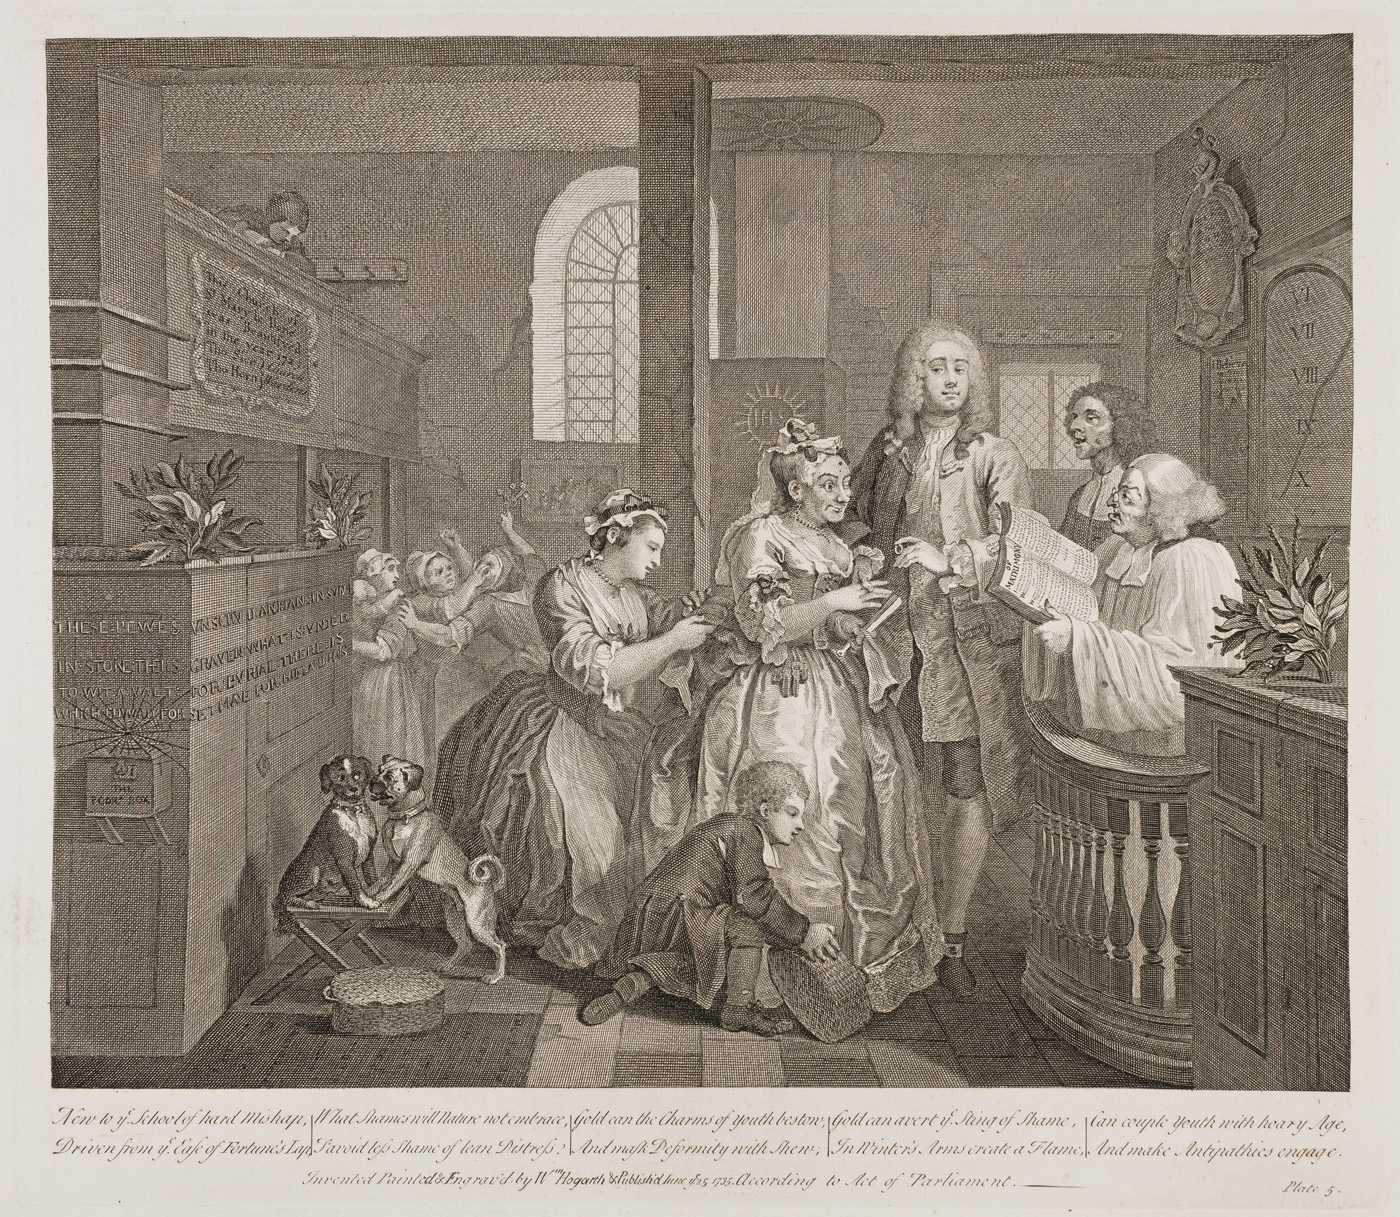 William Hogarth - The Rake's Progress plate 5